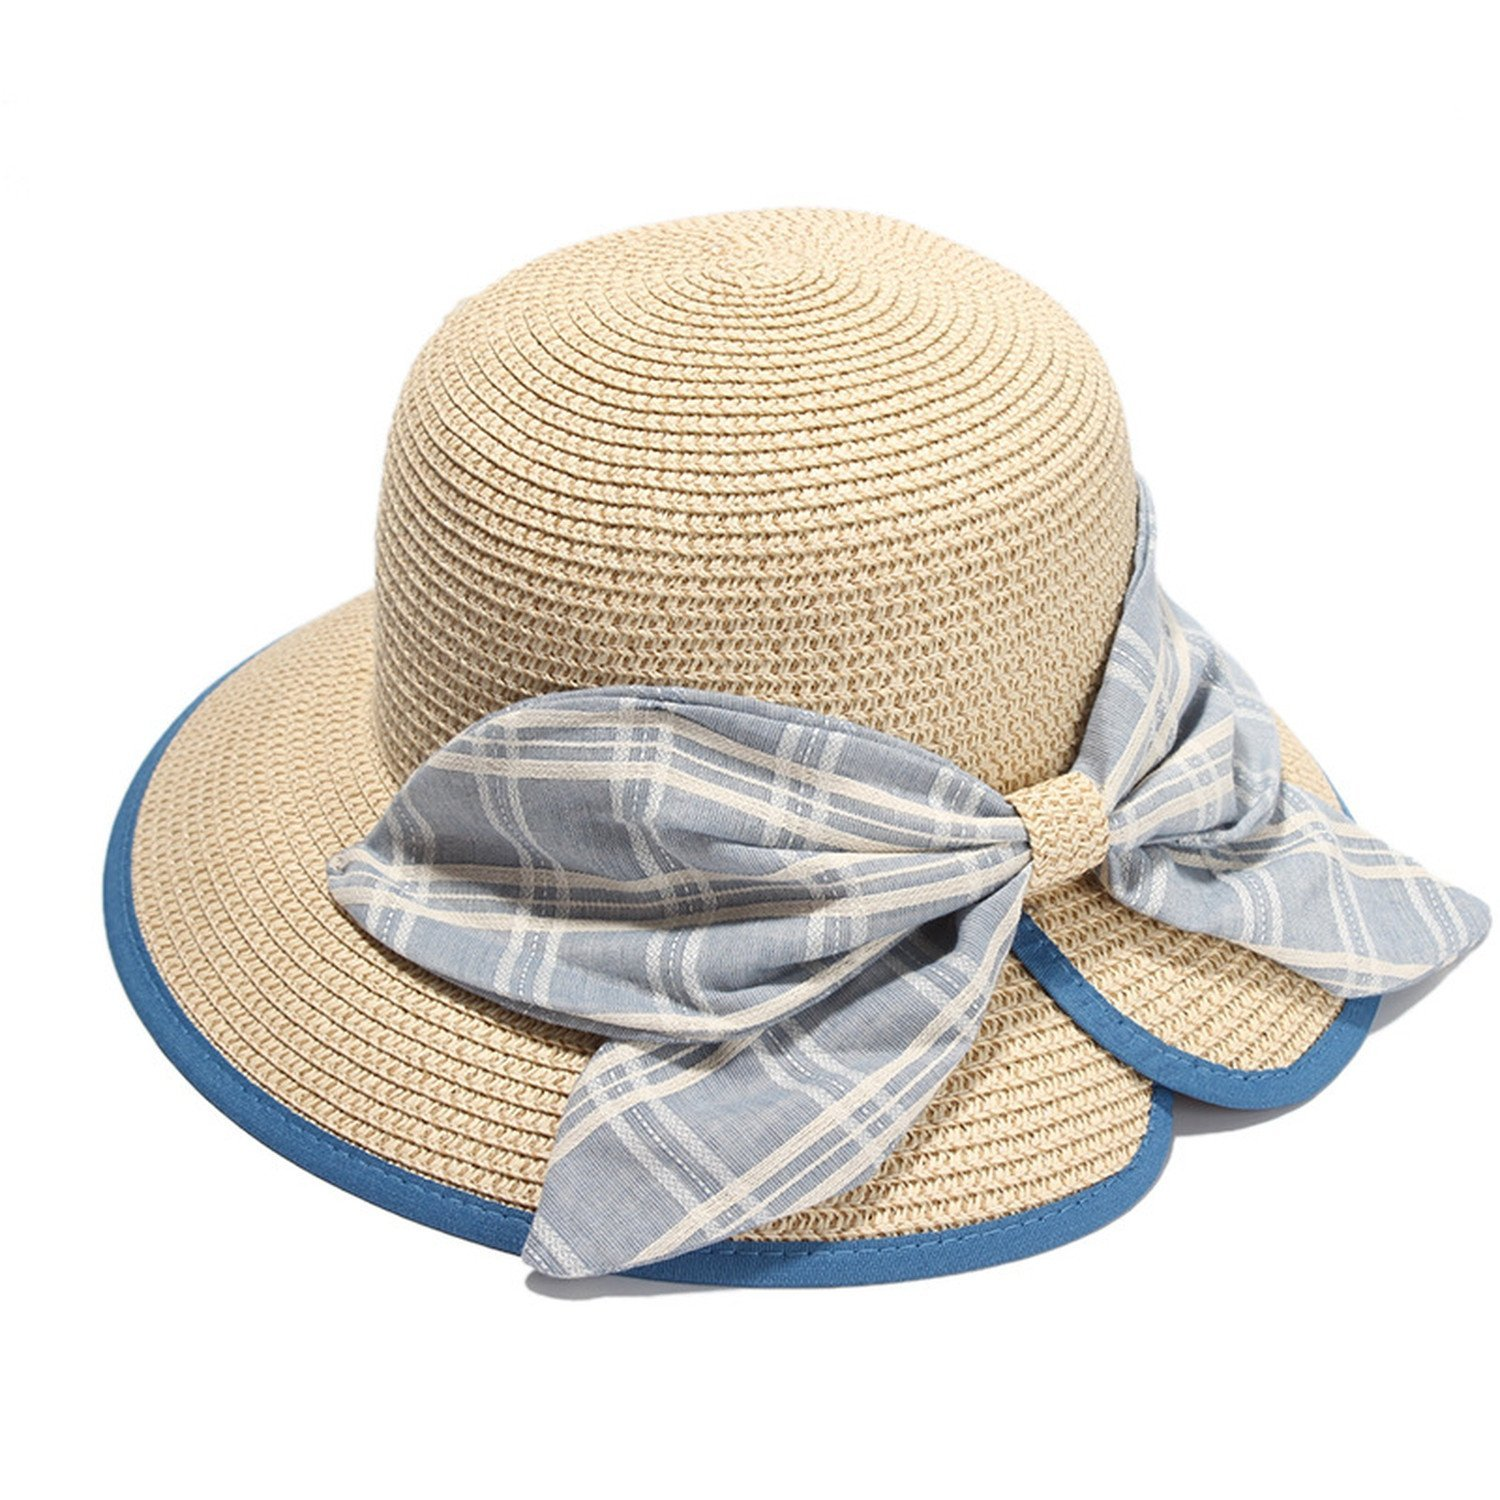 Buy Sllxgli spring and summer ladies straw hat lady bow sun hat in ... bf2d92b6a32